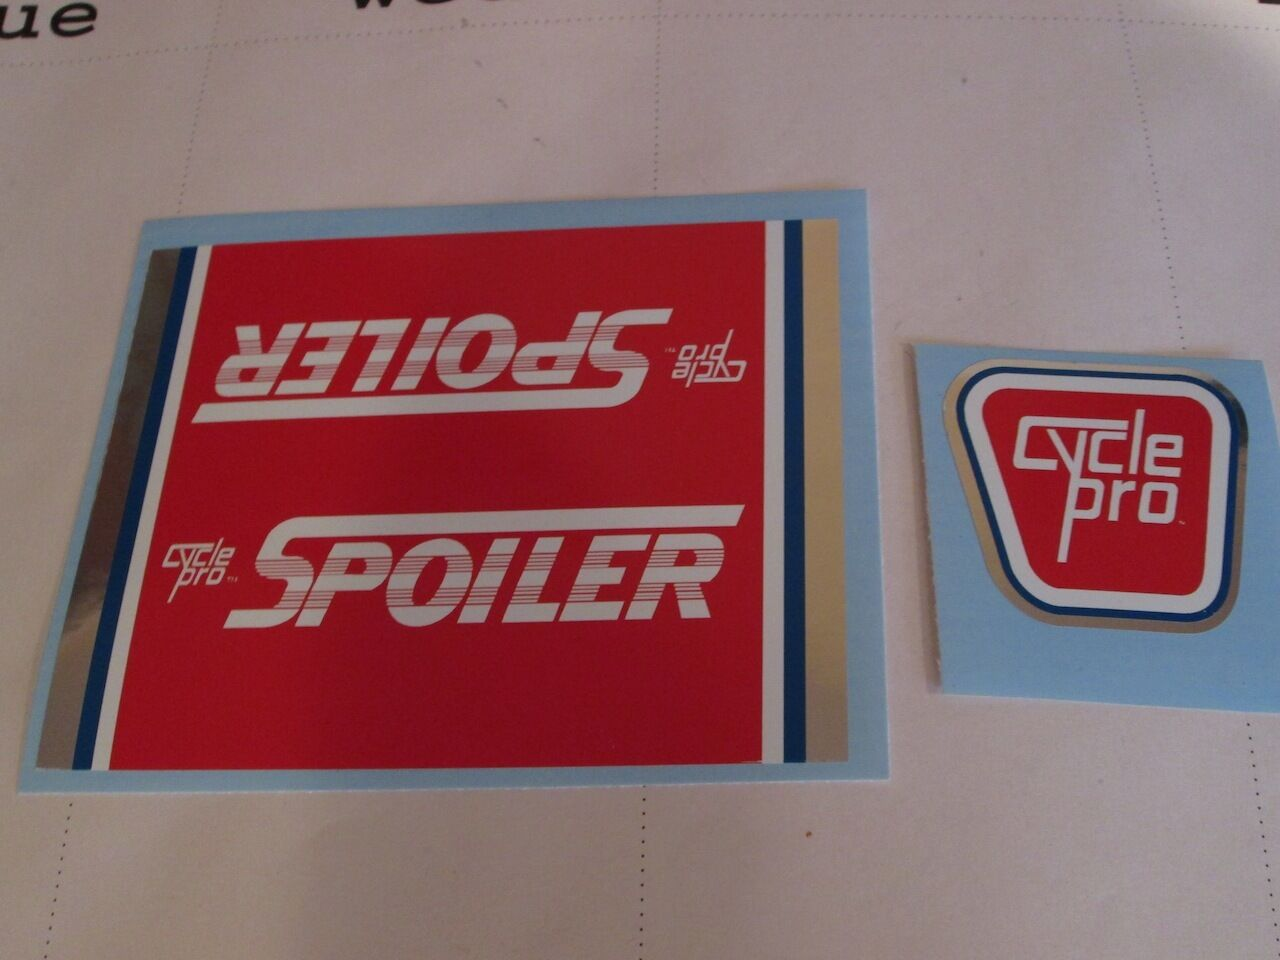 CYCLE PRO FOILER or SPOILER DECAL SETS - Choice either pair